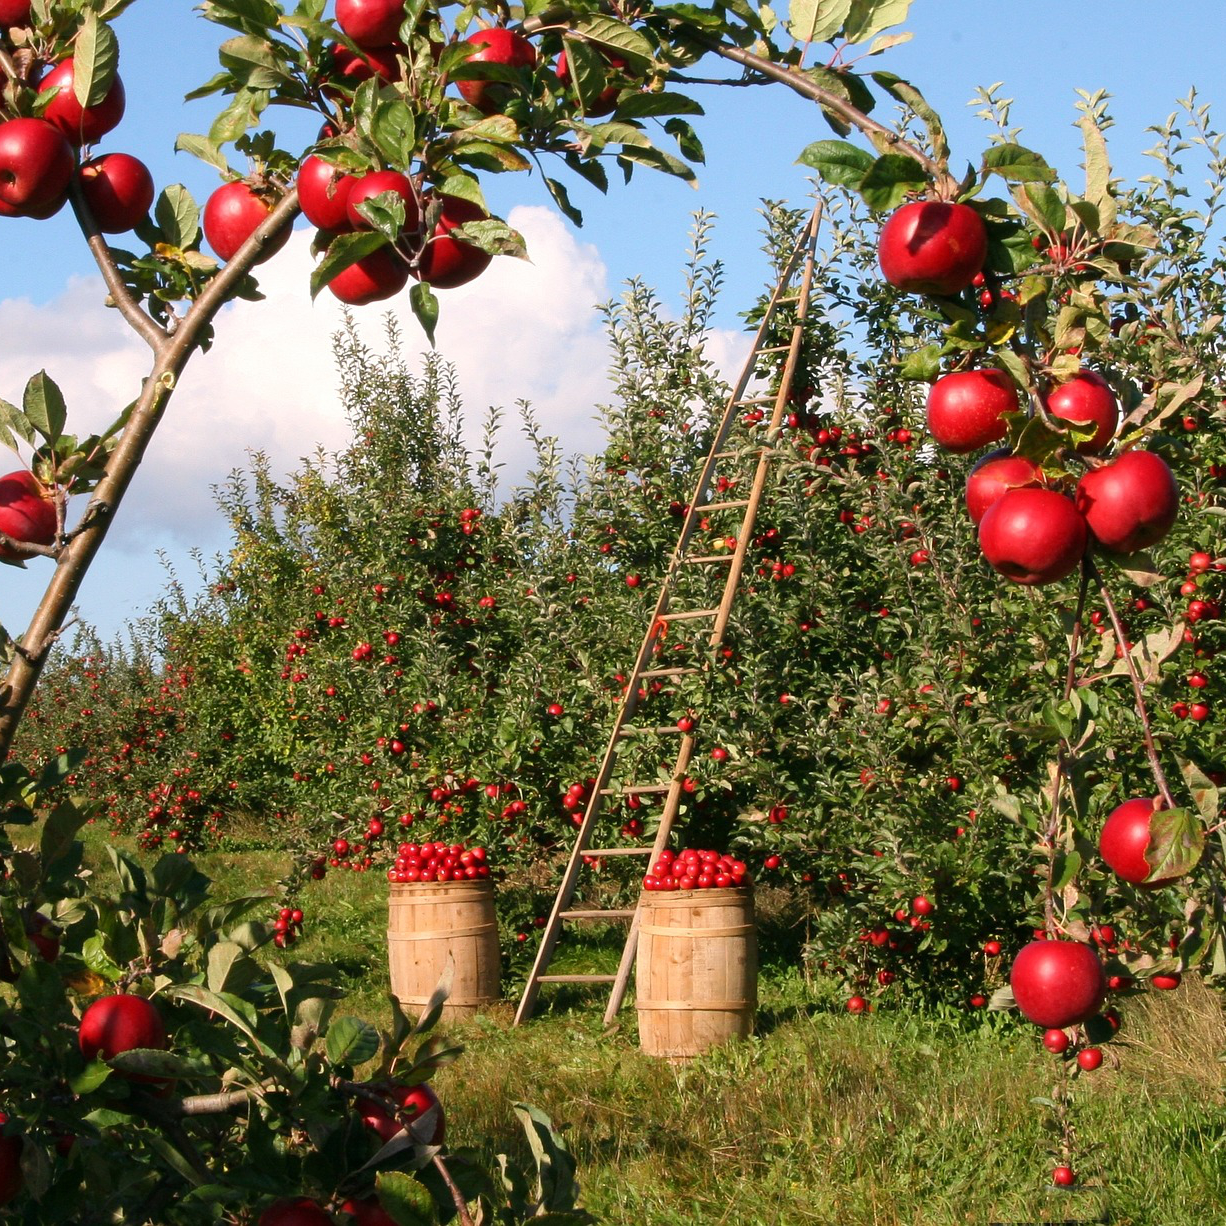 an apple orchard with many red apples on the trees